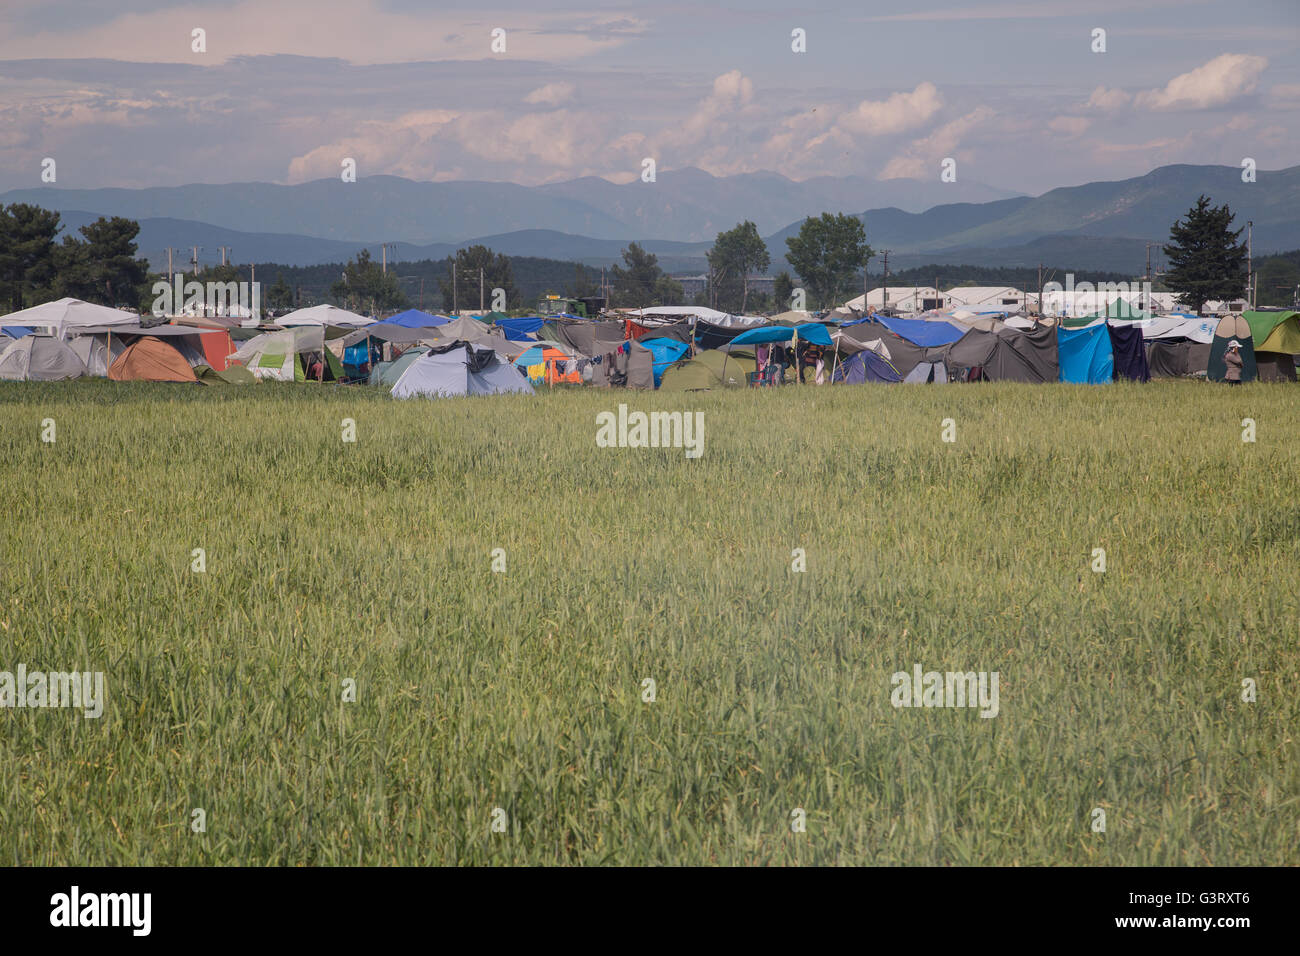 Landscape shot of the entrance to the Idomeni refugee camp for Syrian refugees in Greece, near the Macedonian border. - Stock Image